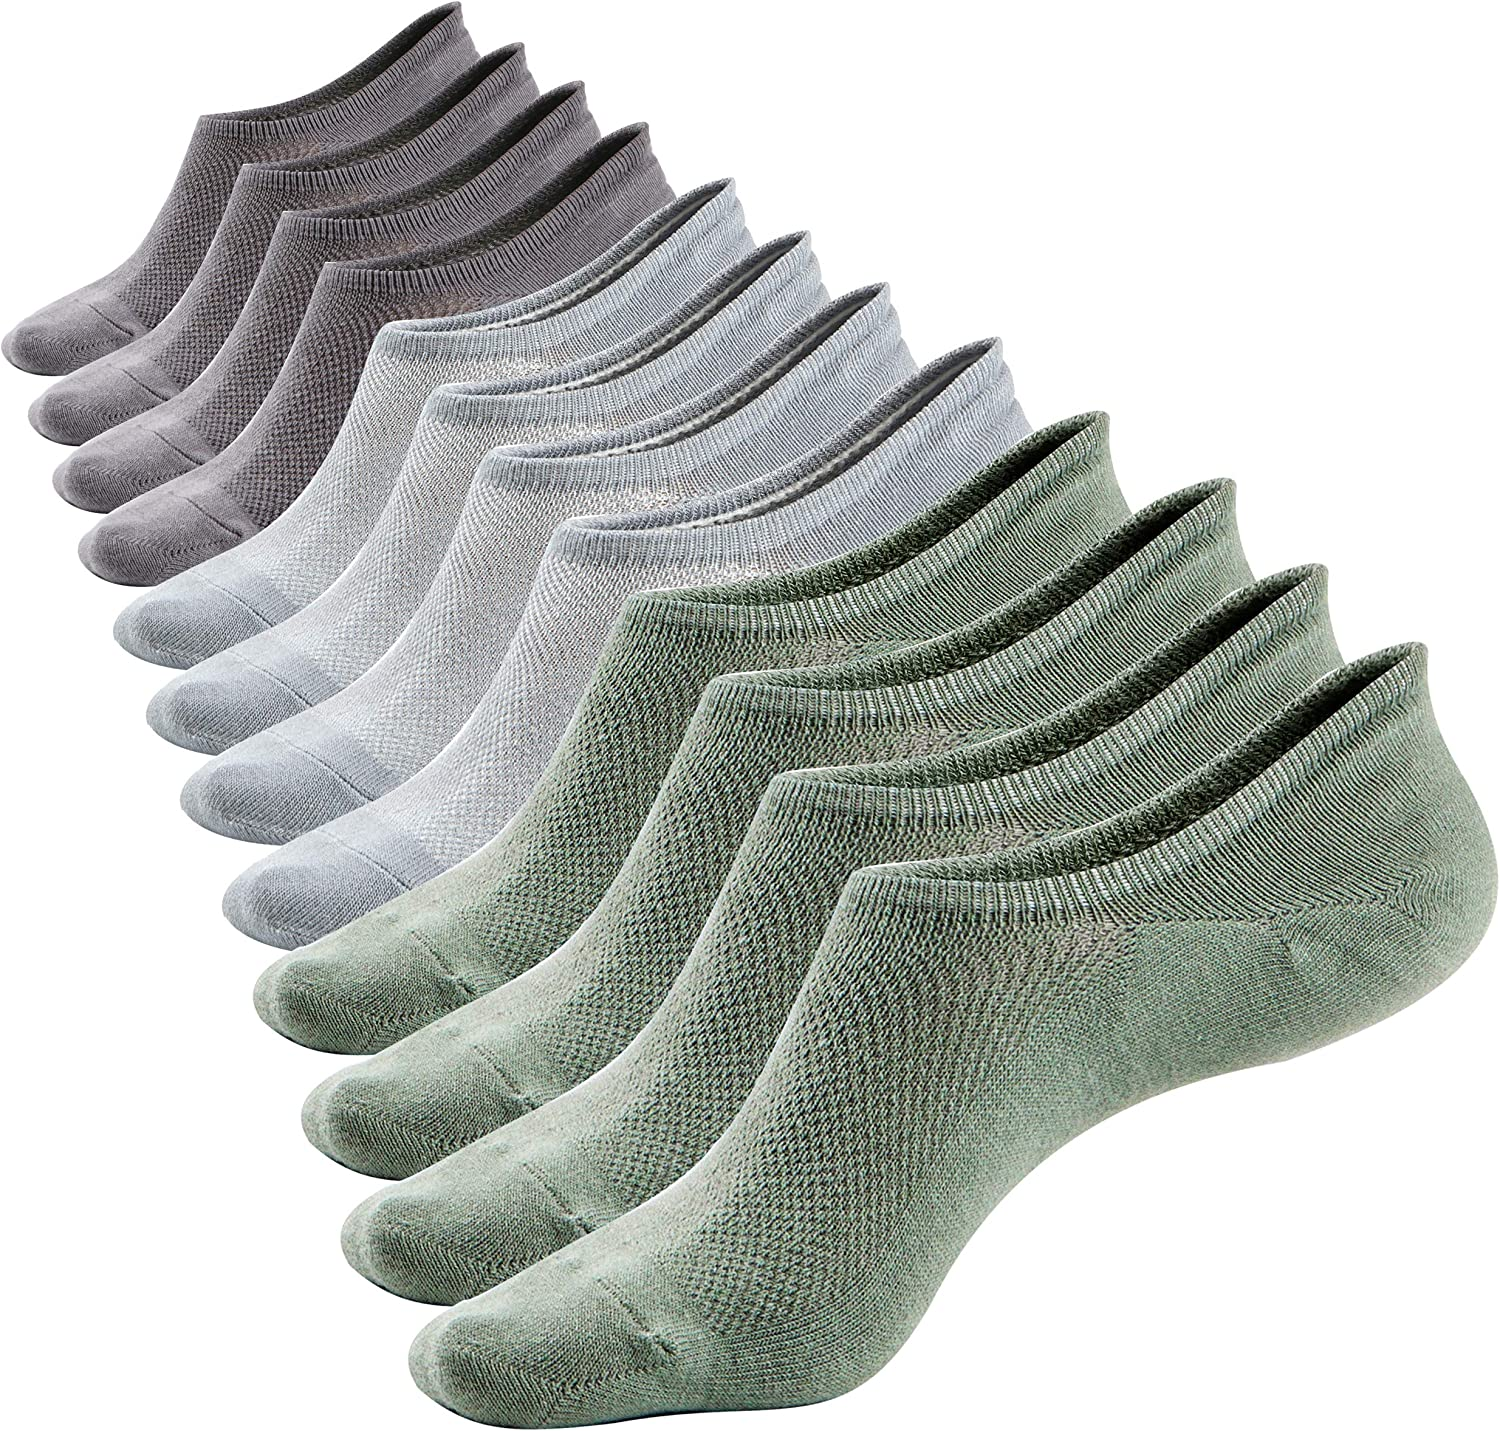 Mens Ankle No Show Low Cut Socks Super Comfy Cotton Casual Non-Slip Socks(6 Pack)Size 8-11